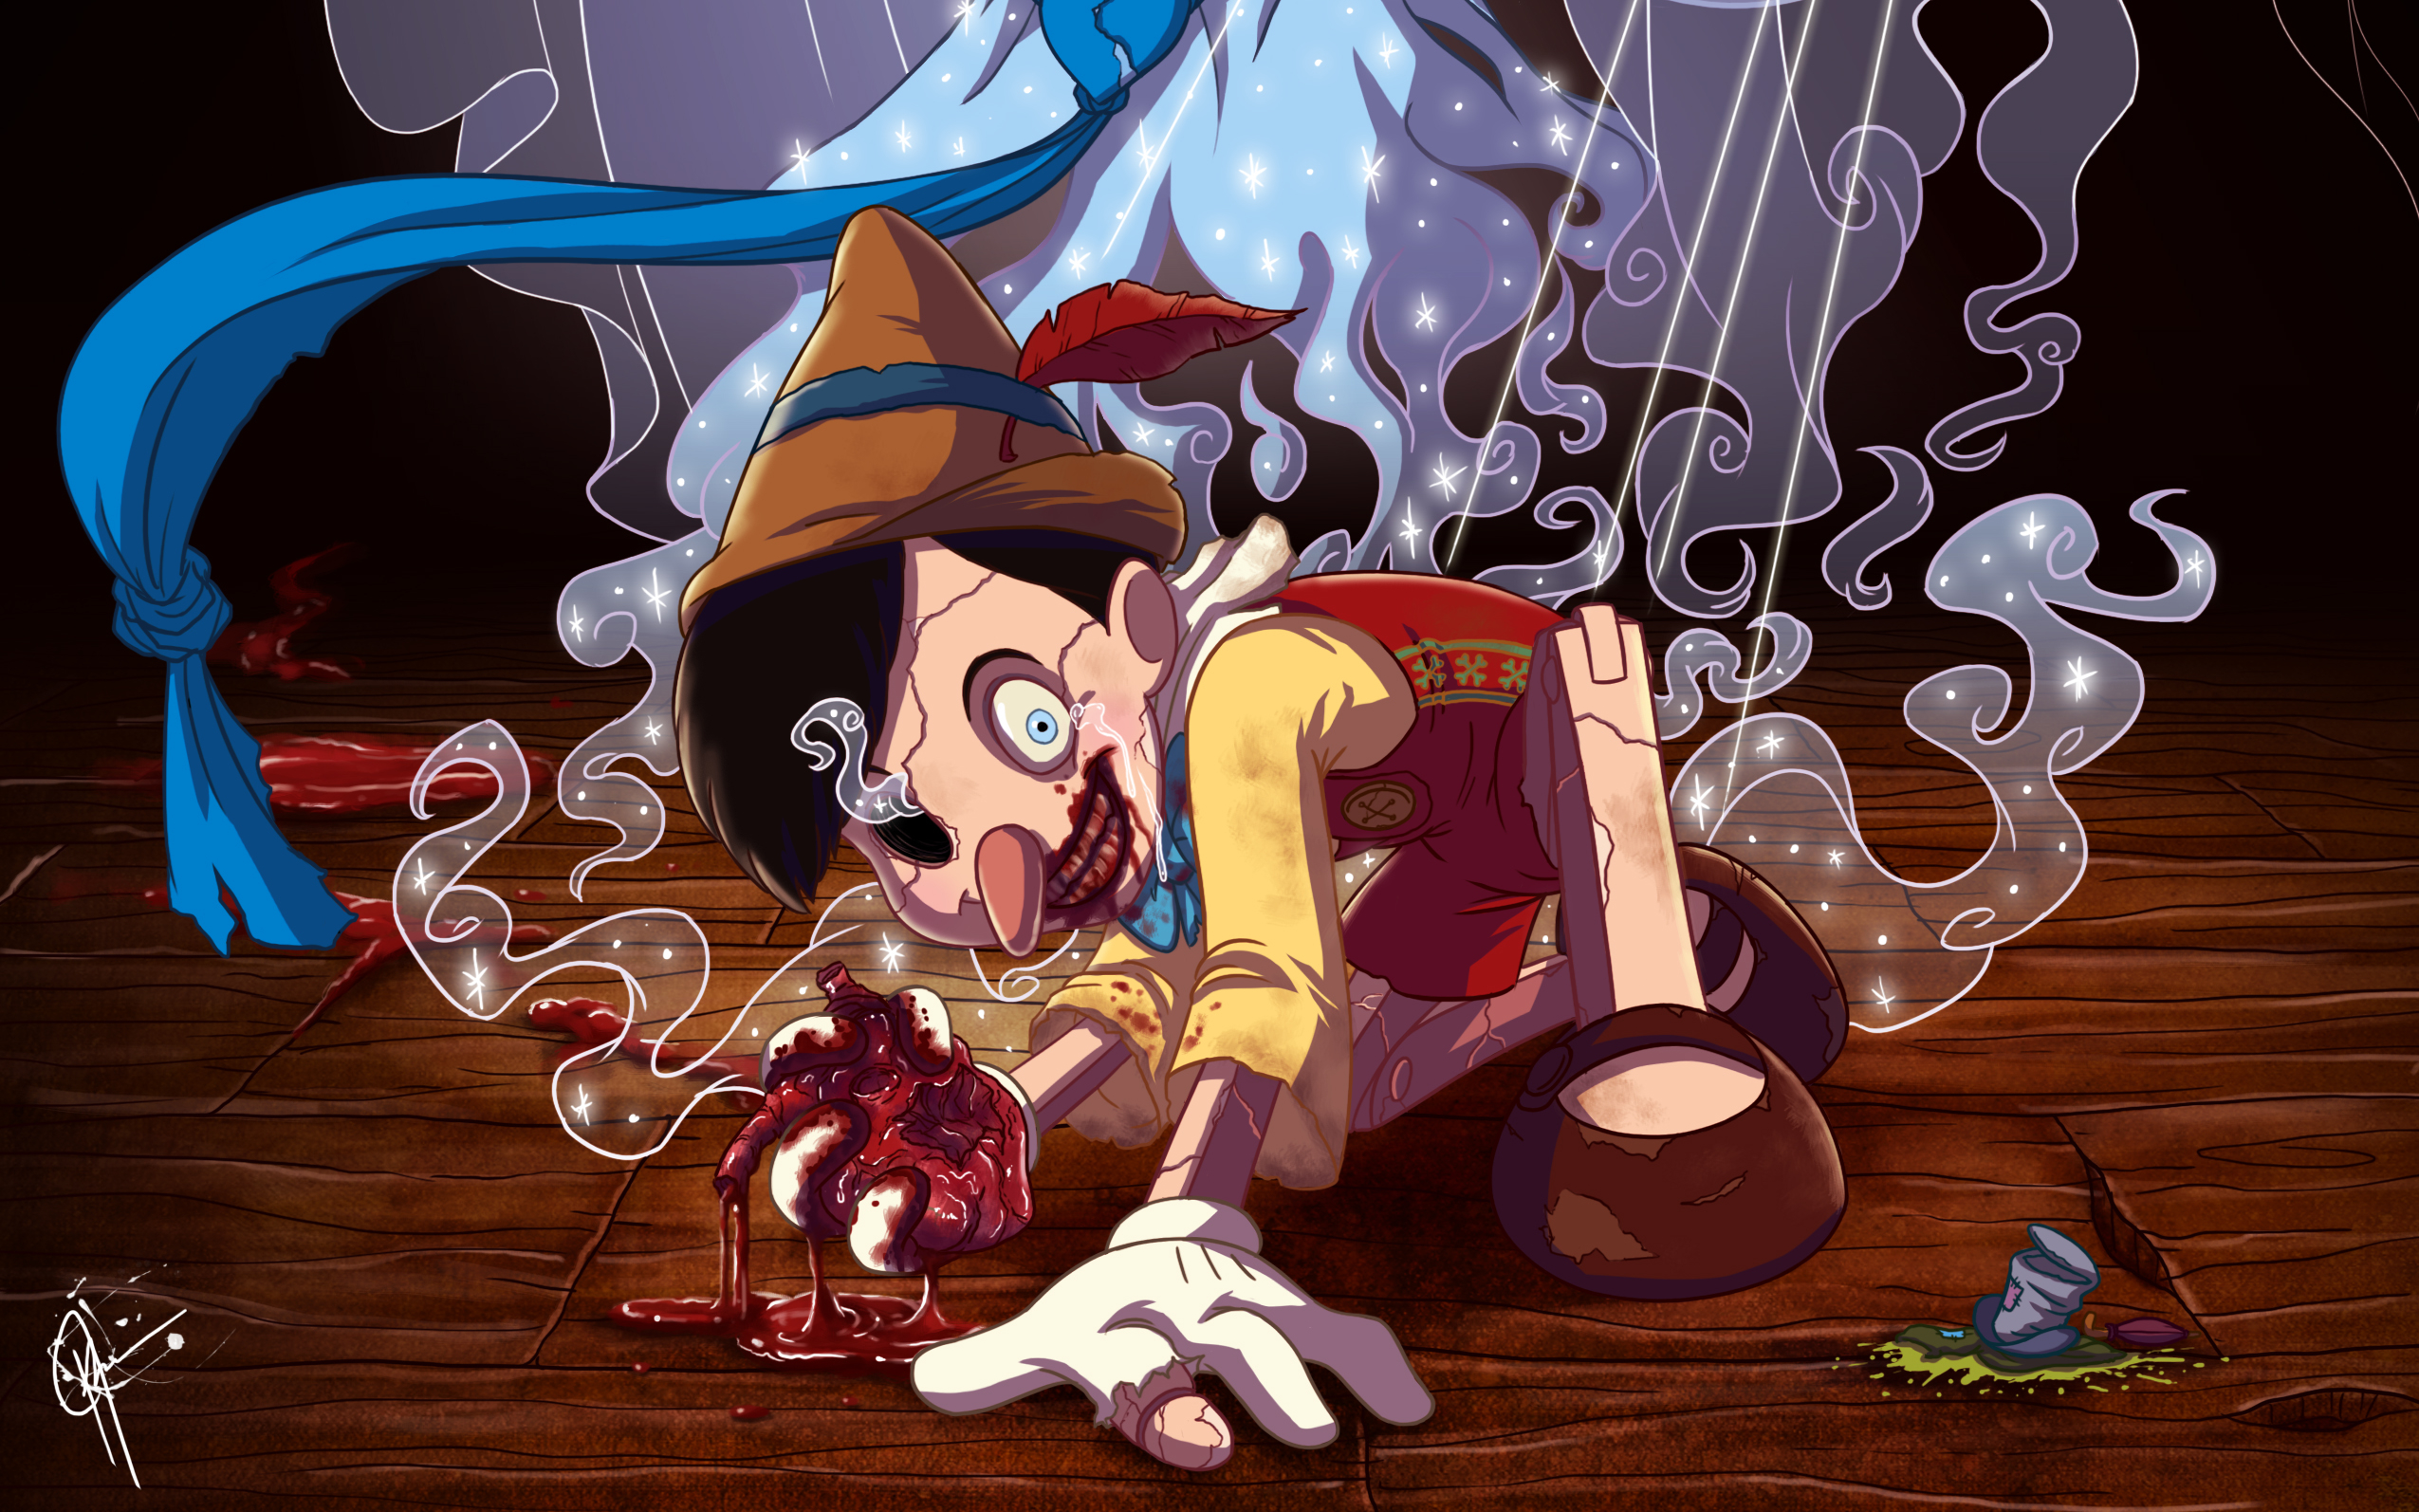 Horror Hd Wallpapers 1366x768 7 Pinocchio Hd Wallpapers Background Images Wallpaper